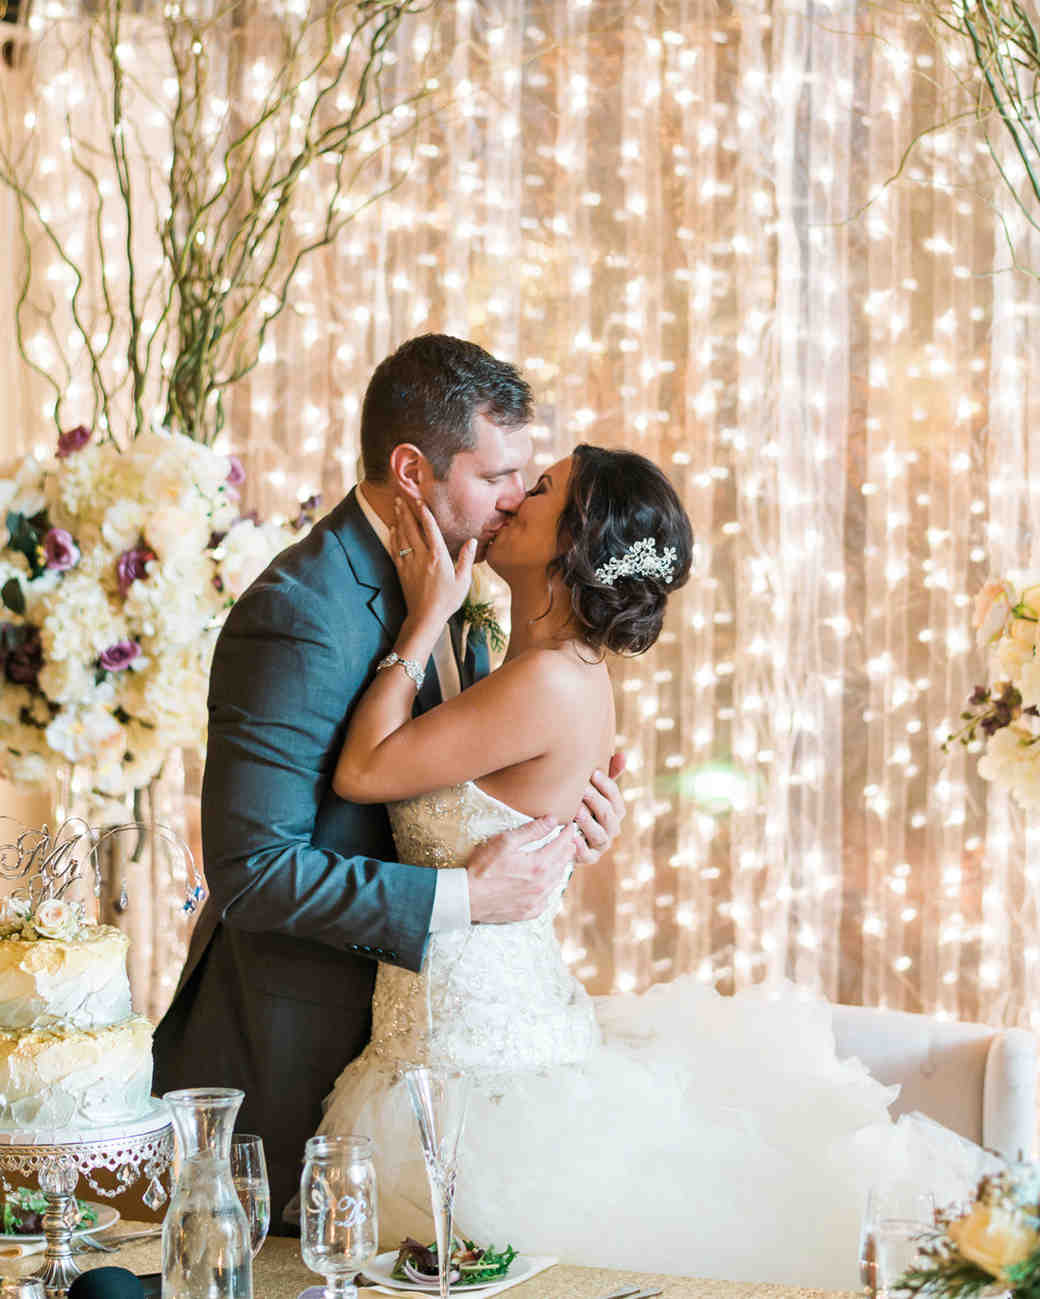 twinkle lights against reception wall with couple kissing